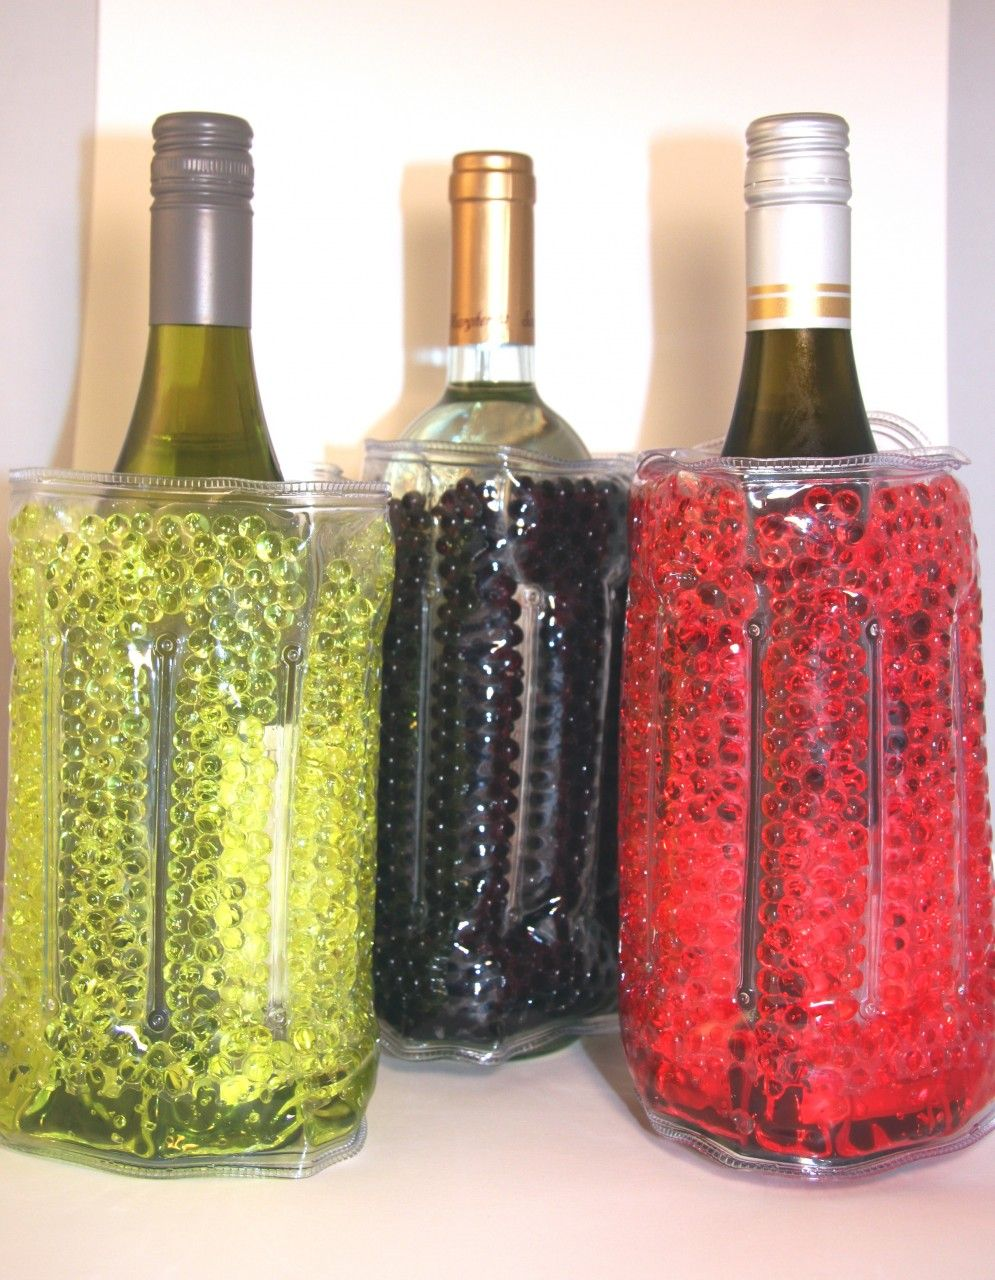 """New to Allatia Jane the """"make my day"""" Popsicooler! Essential for keeping your wine cool! Put them in your freezer and pull them out when you need a way to keep your bottle of wine the right temperature. With its velcro closure, it will tightly fit anysize bottle! We offer: red, green and black! The perfect hostess gift for anyone and everyone on your list this year! USE SHOP20 and receive 20% off today!"""